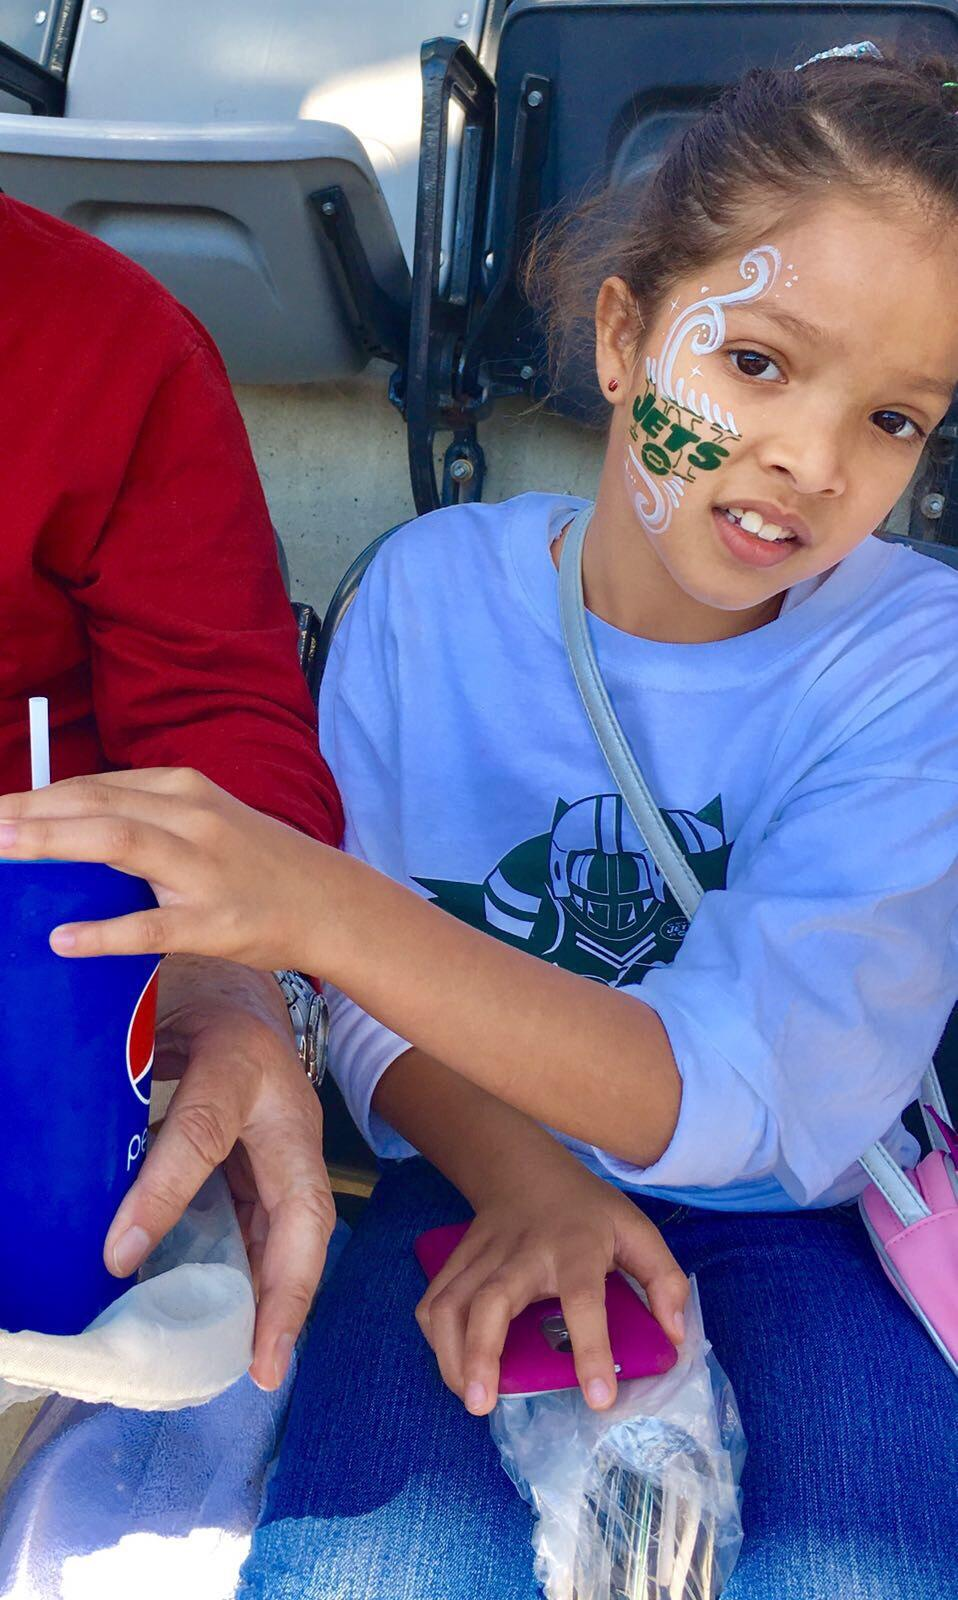 L. Ramirez showing off her Jets pride with her face painted